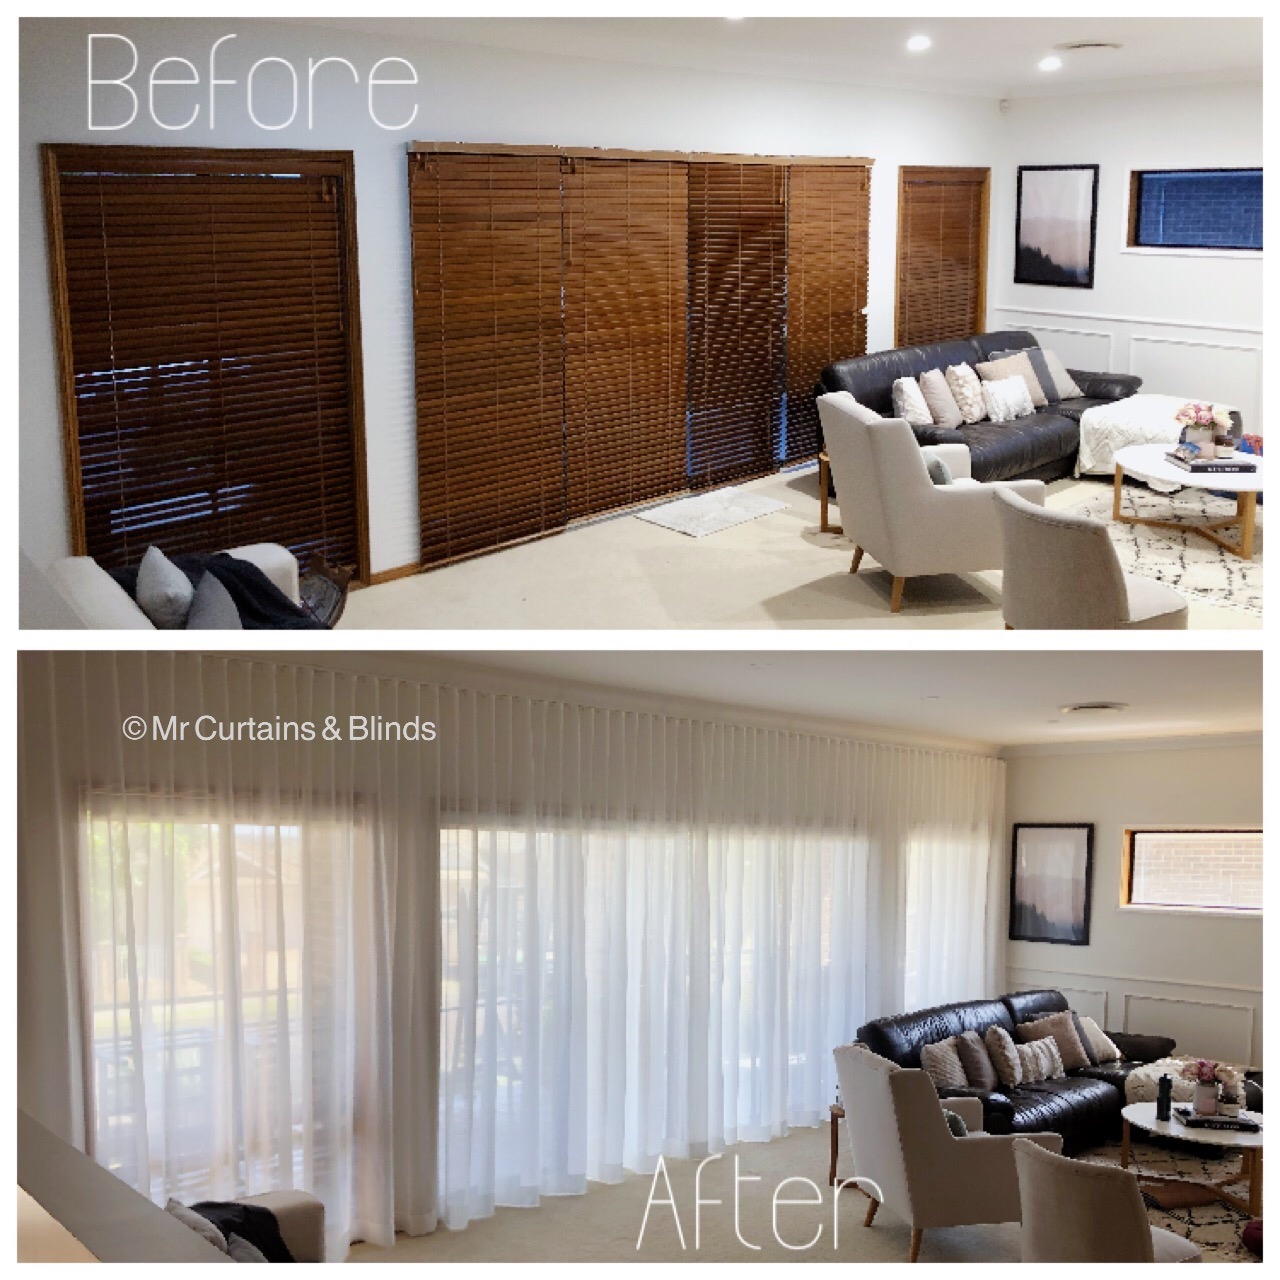 Sfold Seattle Sheer Curtains and Blockout Blinds Mr Curtains and Blinds Central Coast